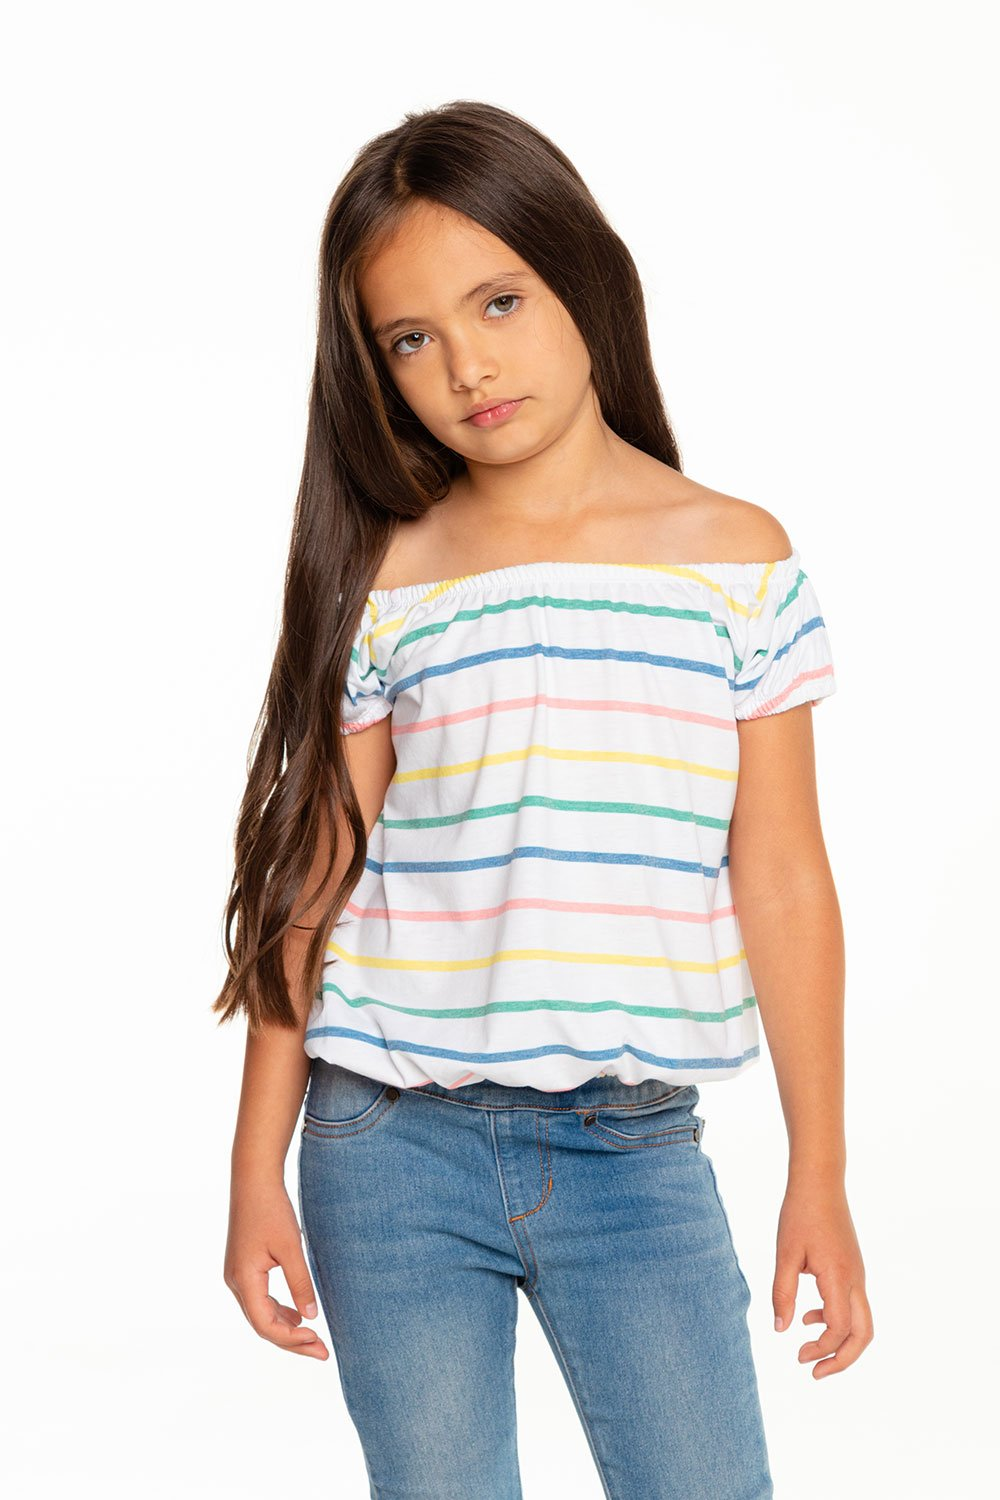 Vintage Jersey Off Shoulder Tee - Recycled